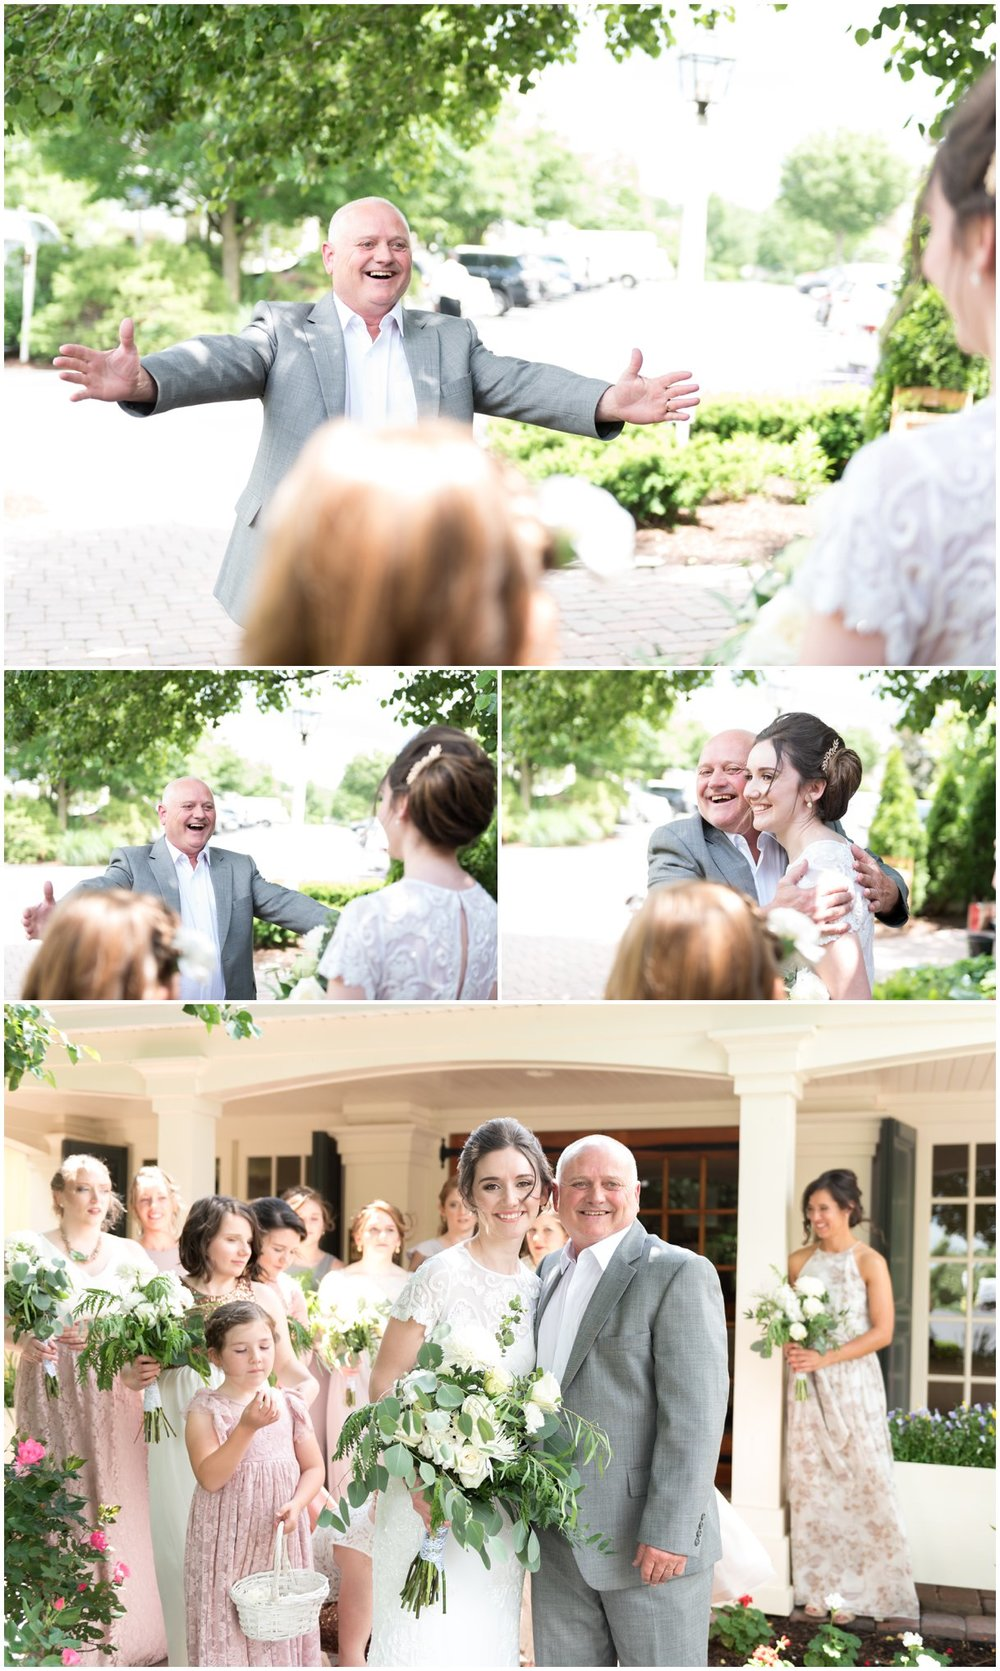 leolainn-lancasterwedding-photographer-photography-outdoor-wedding-fatherofbride-photo